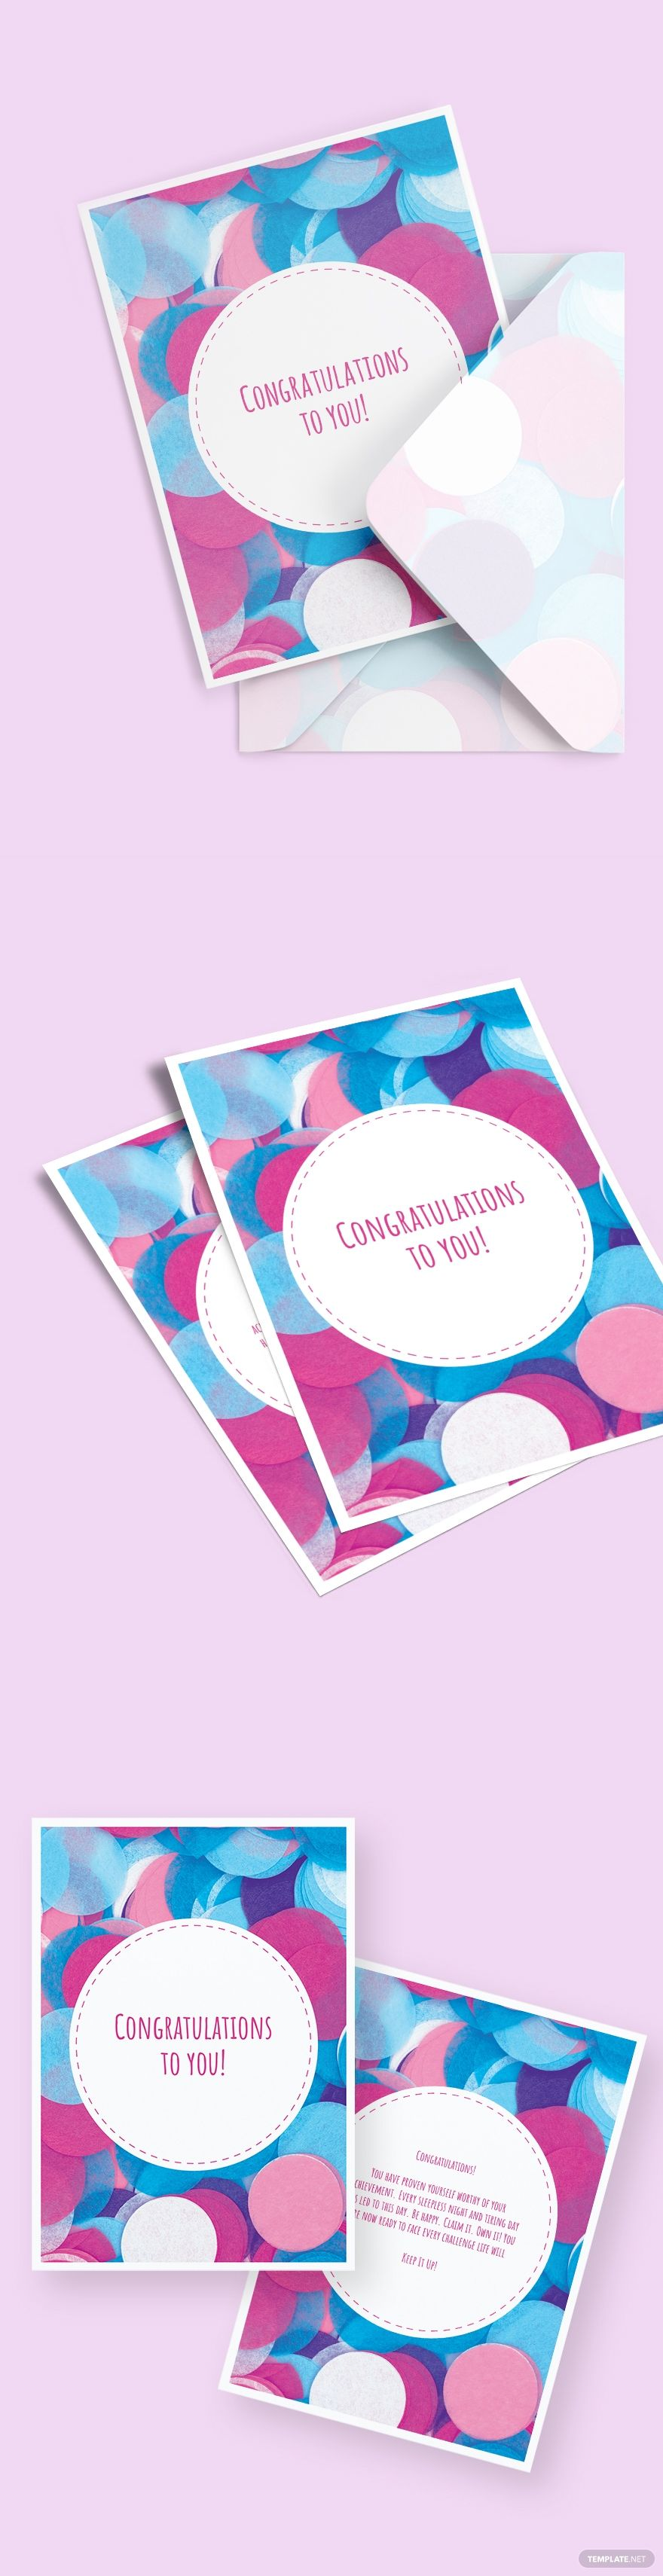 congratulations greeting card template free pdf  word